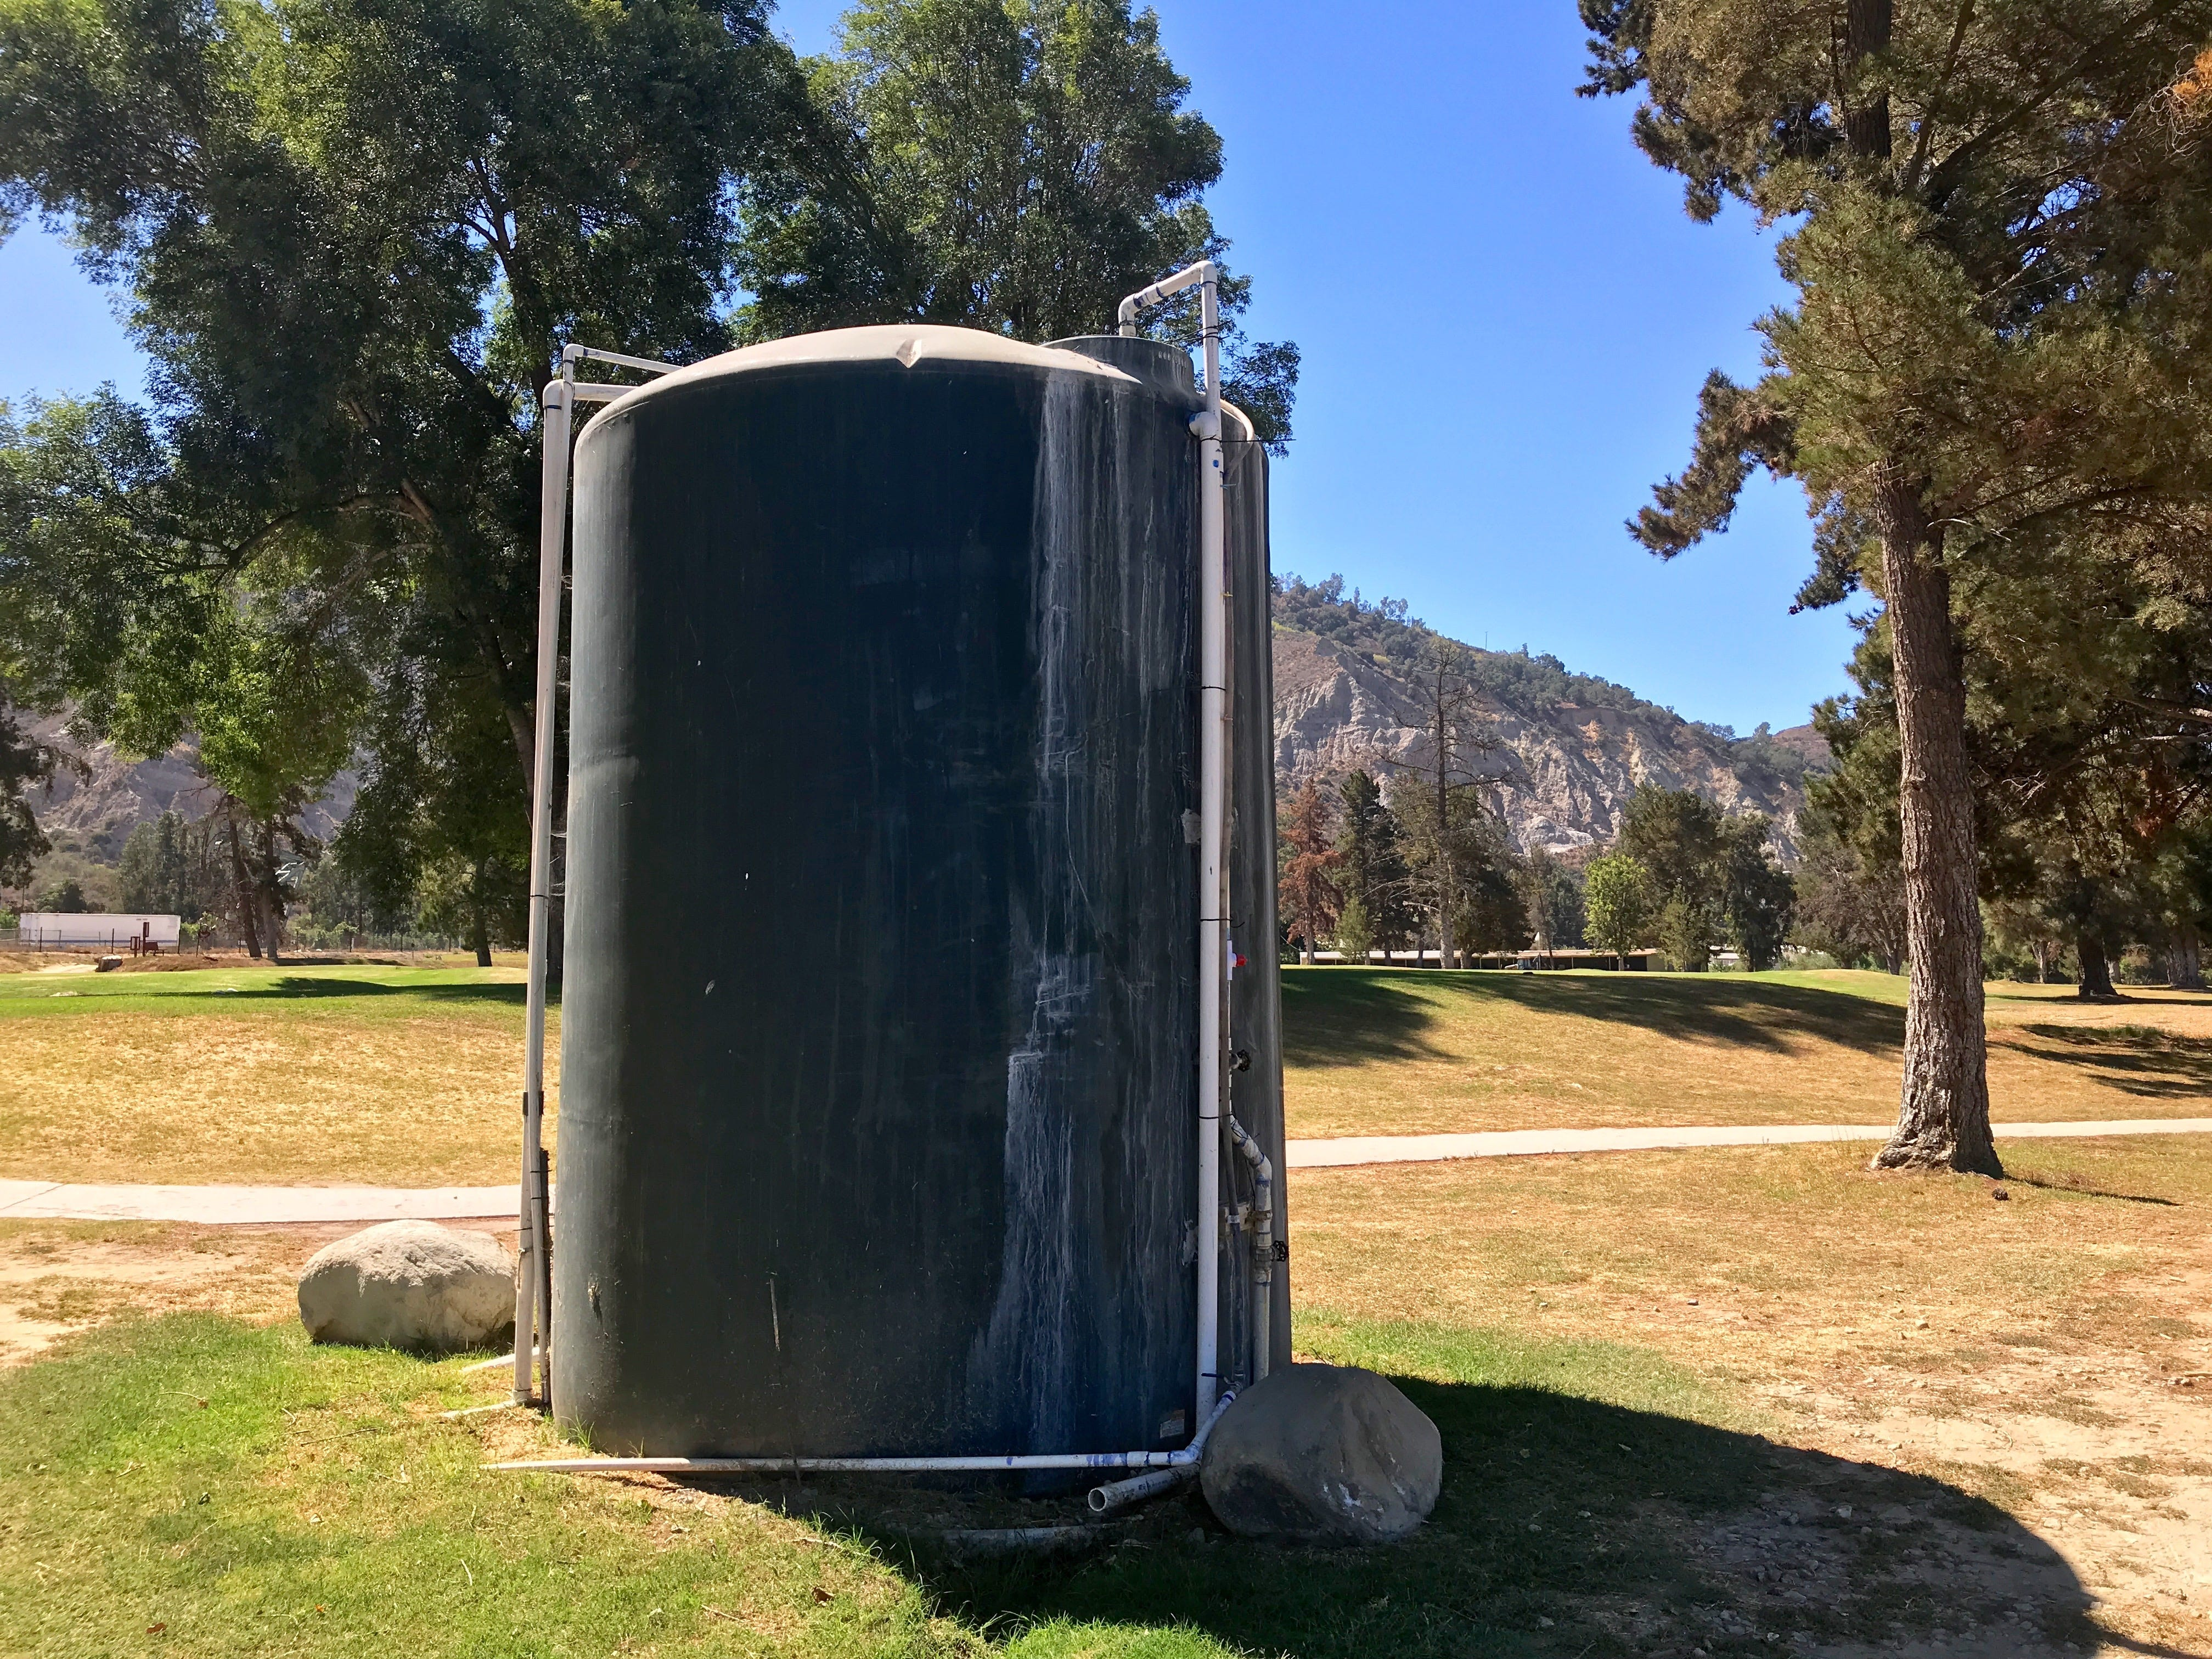 Mountain View Golf Course managers use this 5,000-gallon tank to store city water for irrigating the 20 greens. It takes three hours to fill the tank, which is enough to water just three greens, according to golf pro Chris Harvey.